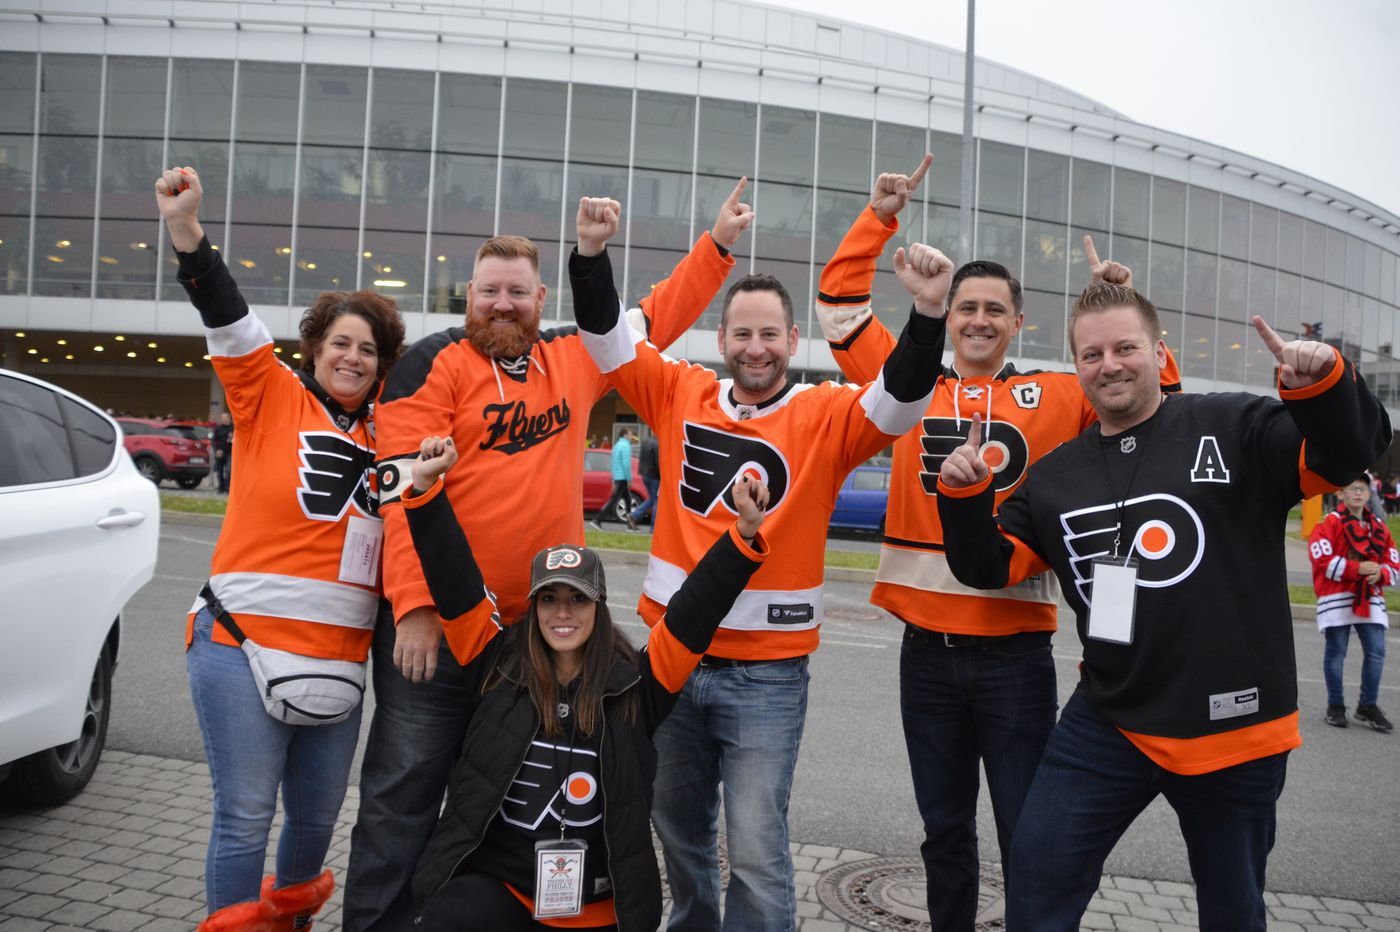 Flyers' fans turned Prague into a sea of orange